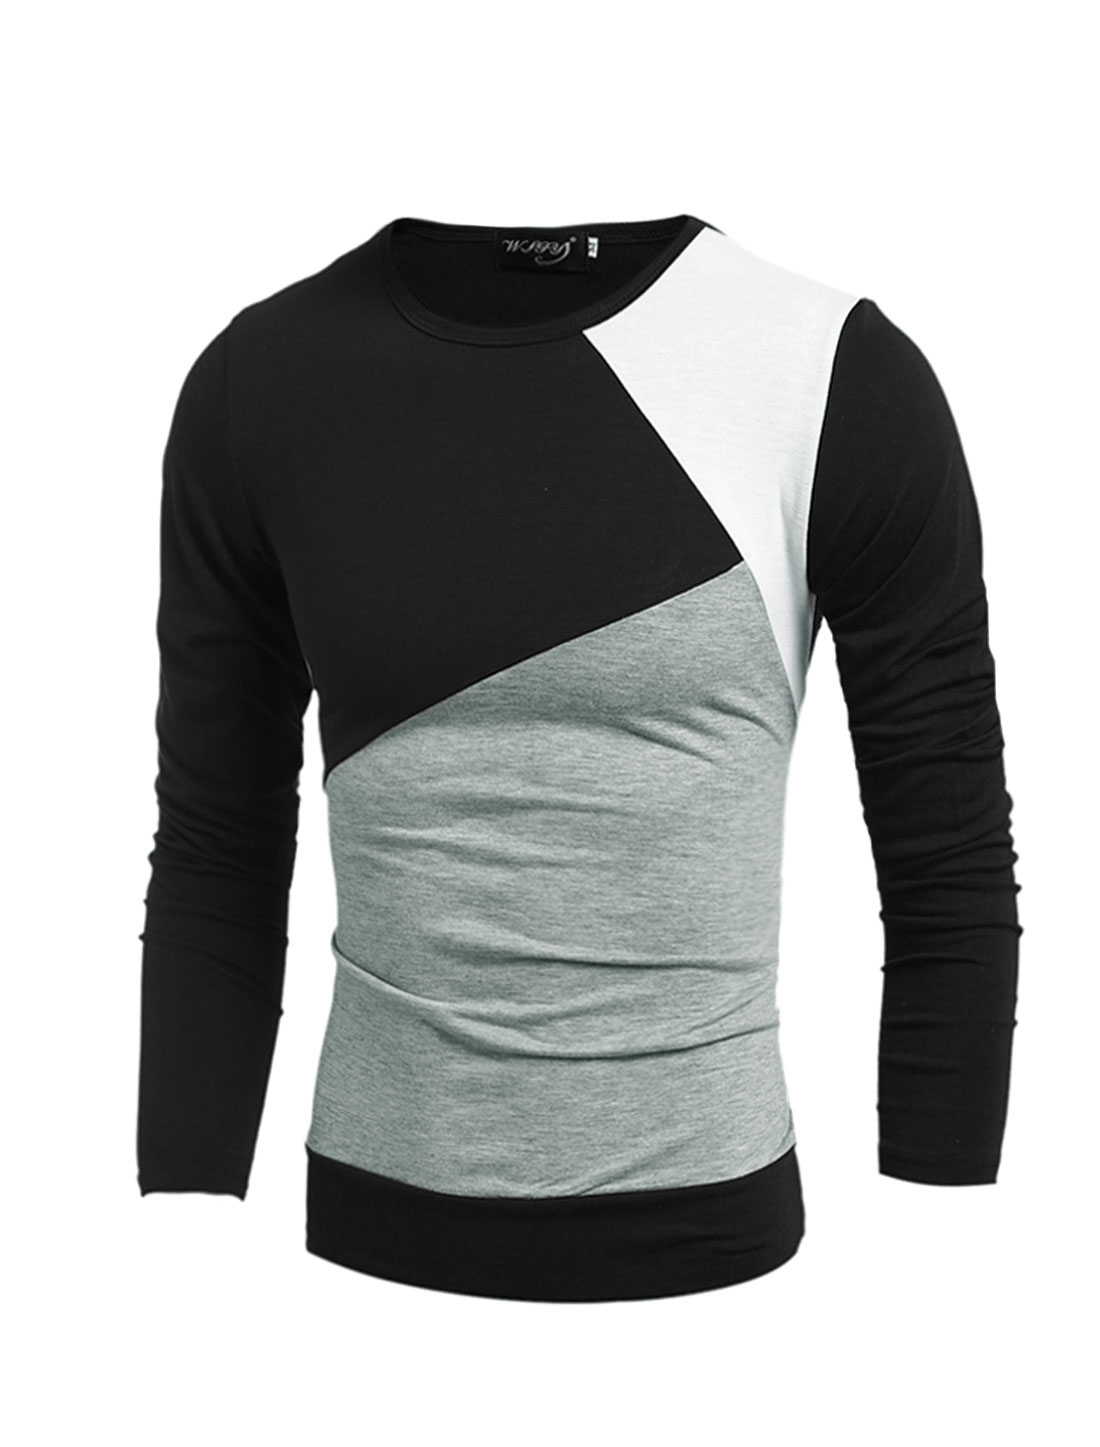 Man Slim Fit Long Sleeves Color Block Tee Shirt Black S